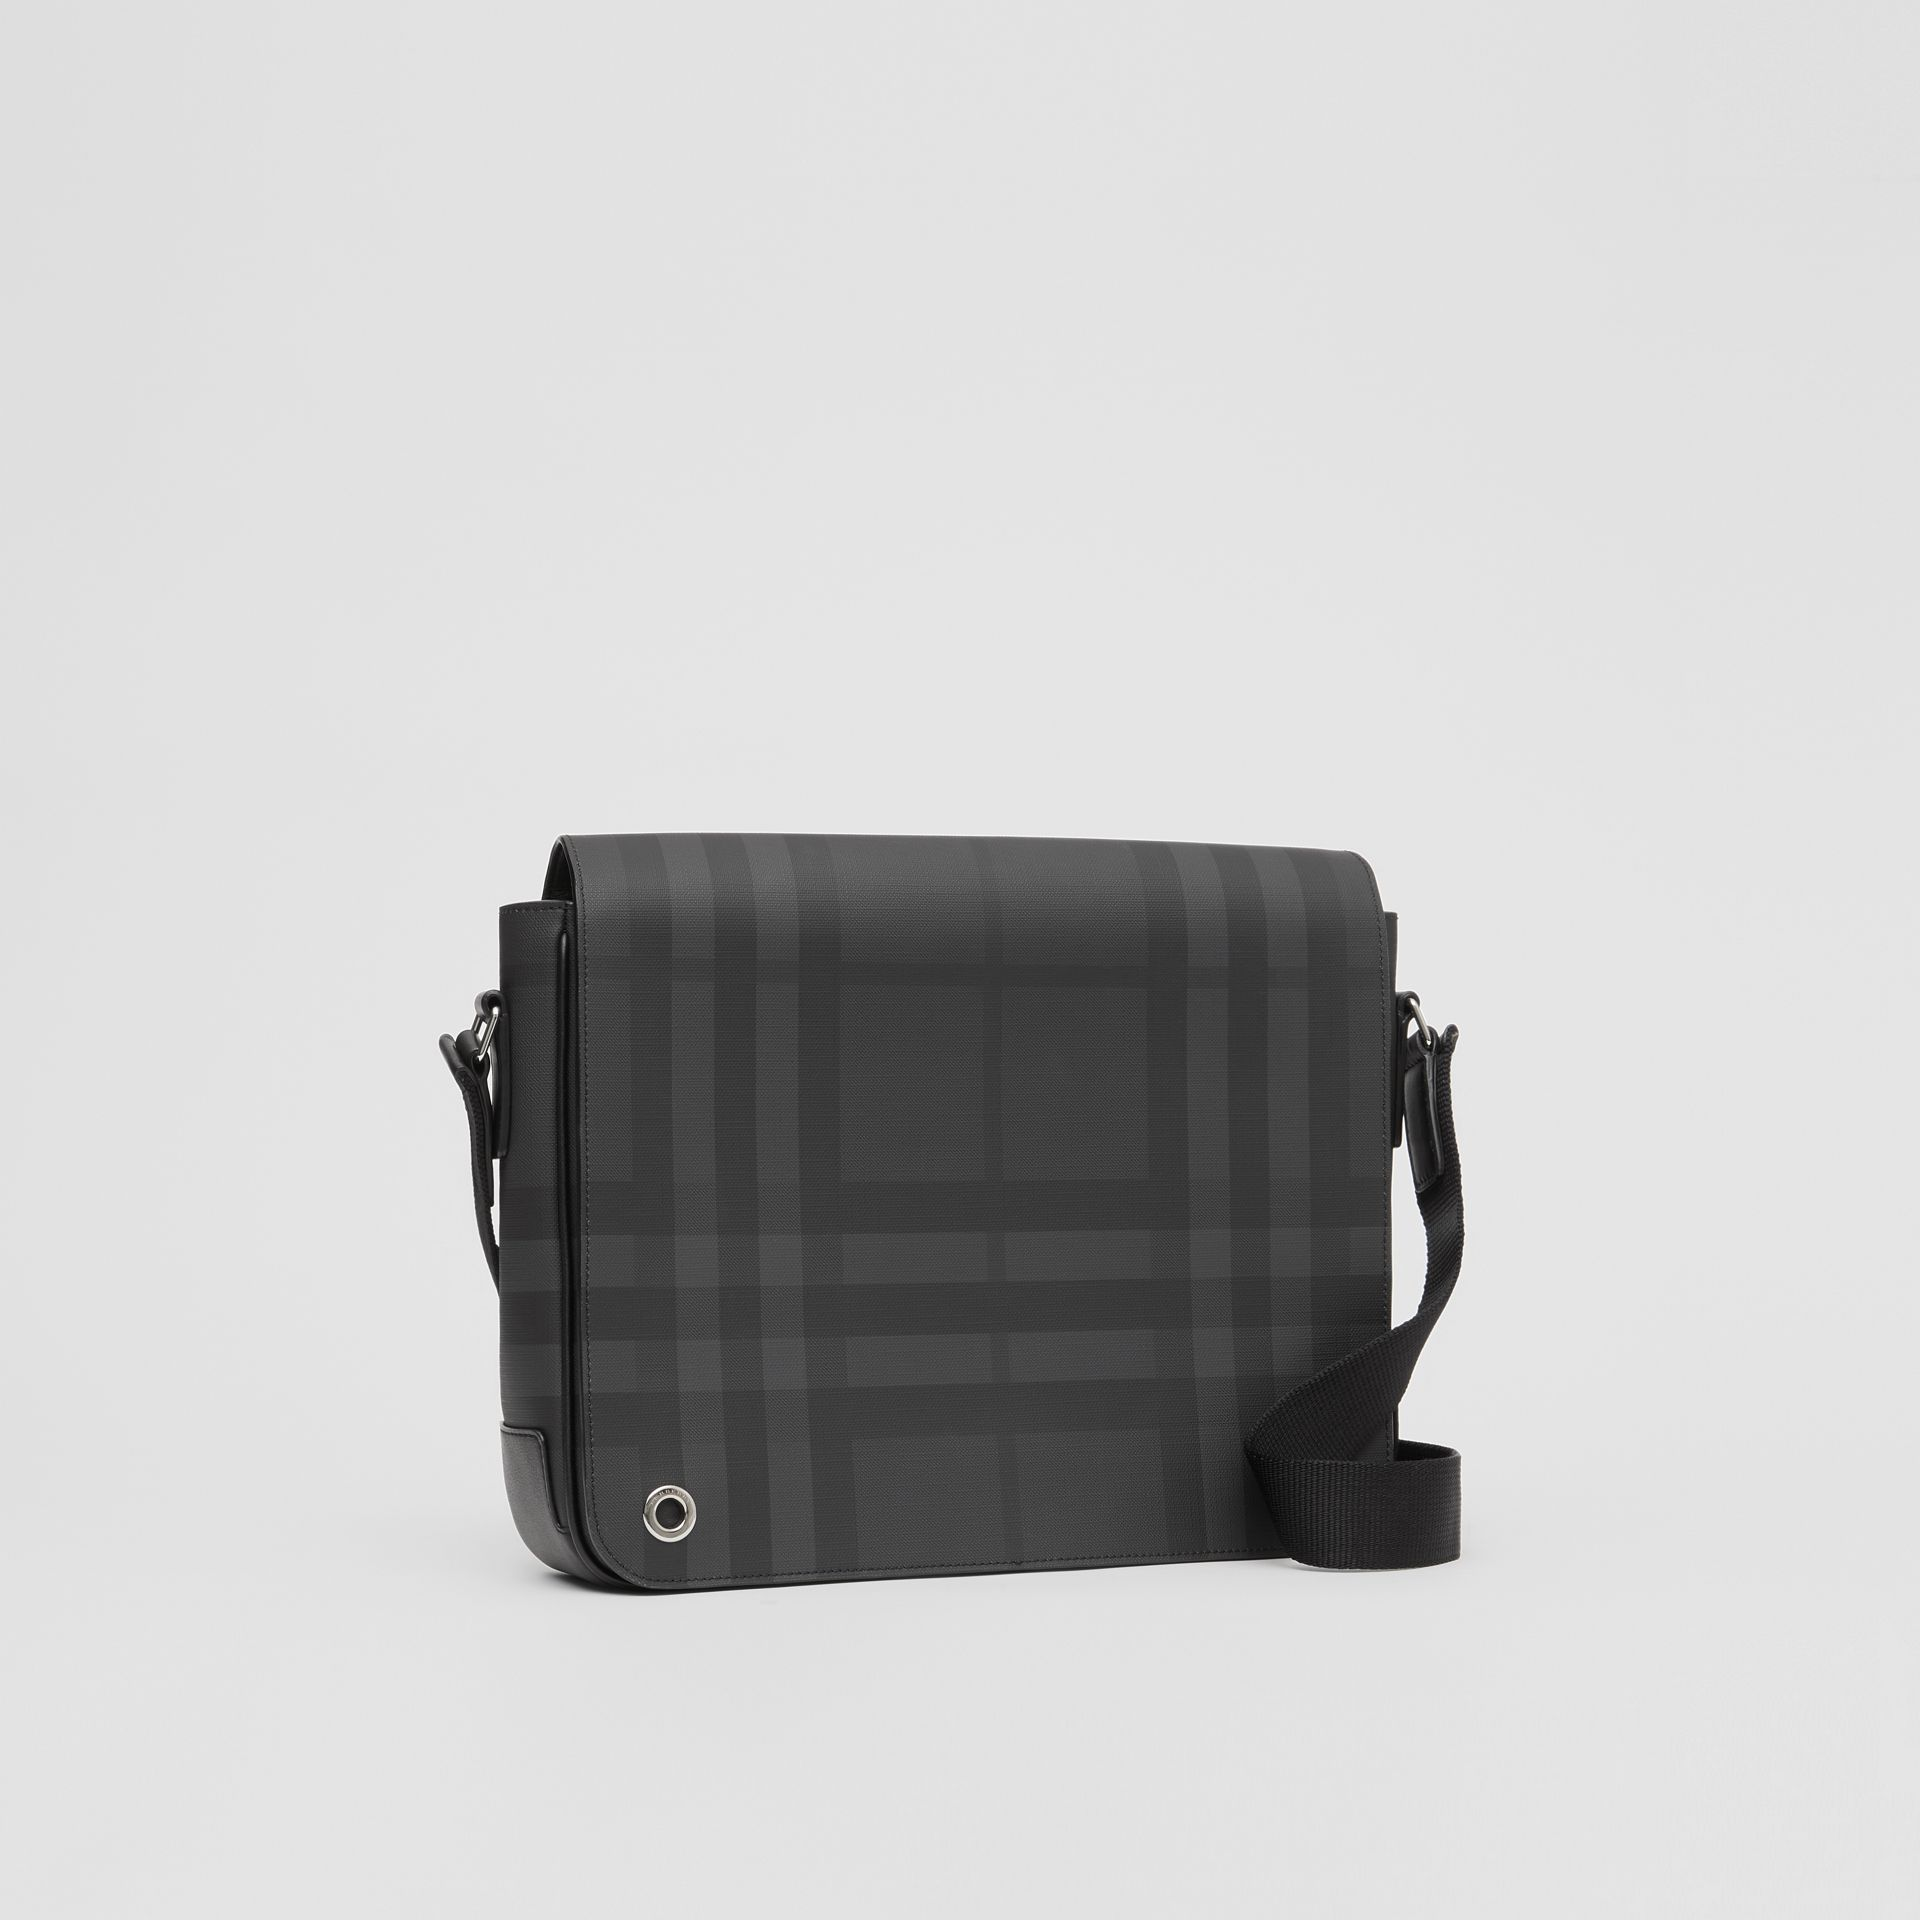 Sac cartable en tissu London check et cuir (Anthracite Sombre) - Homme | Burberry - photo de la galerie 6